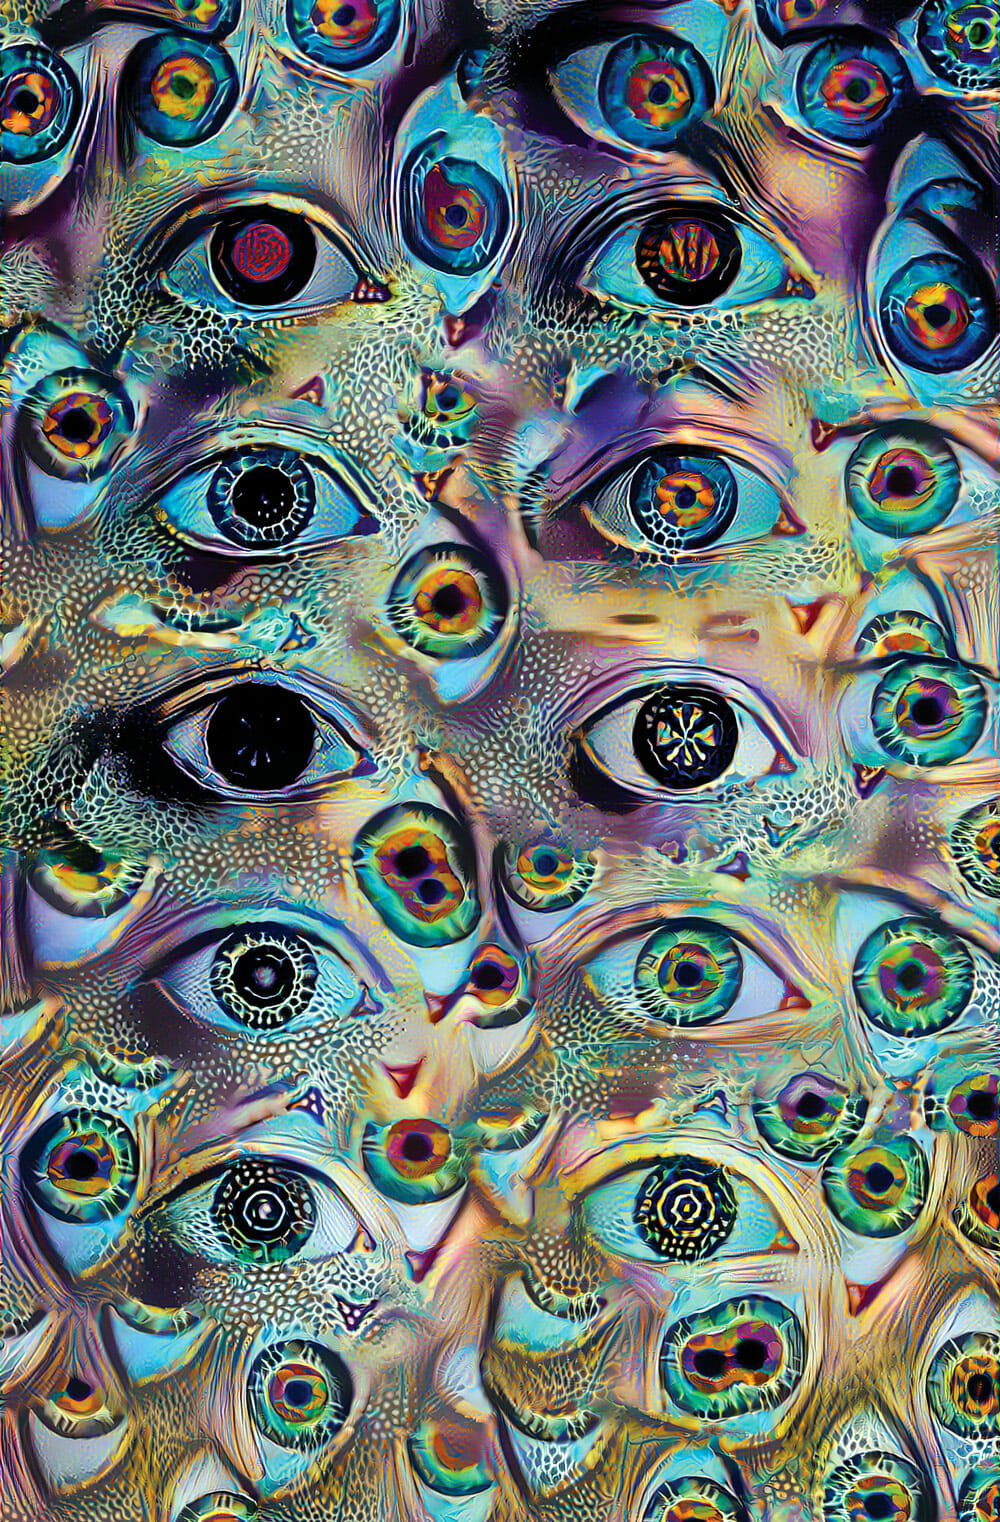 A collage of psychedelic eyes peer at the viewer.